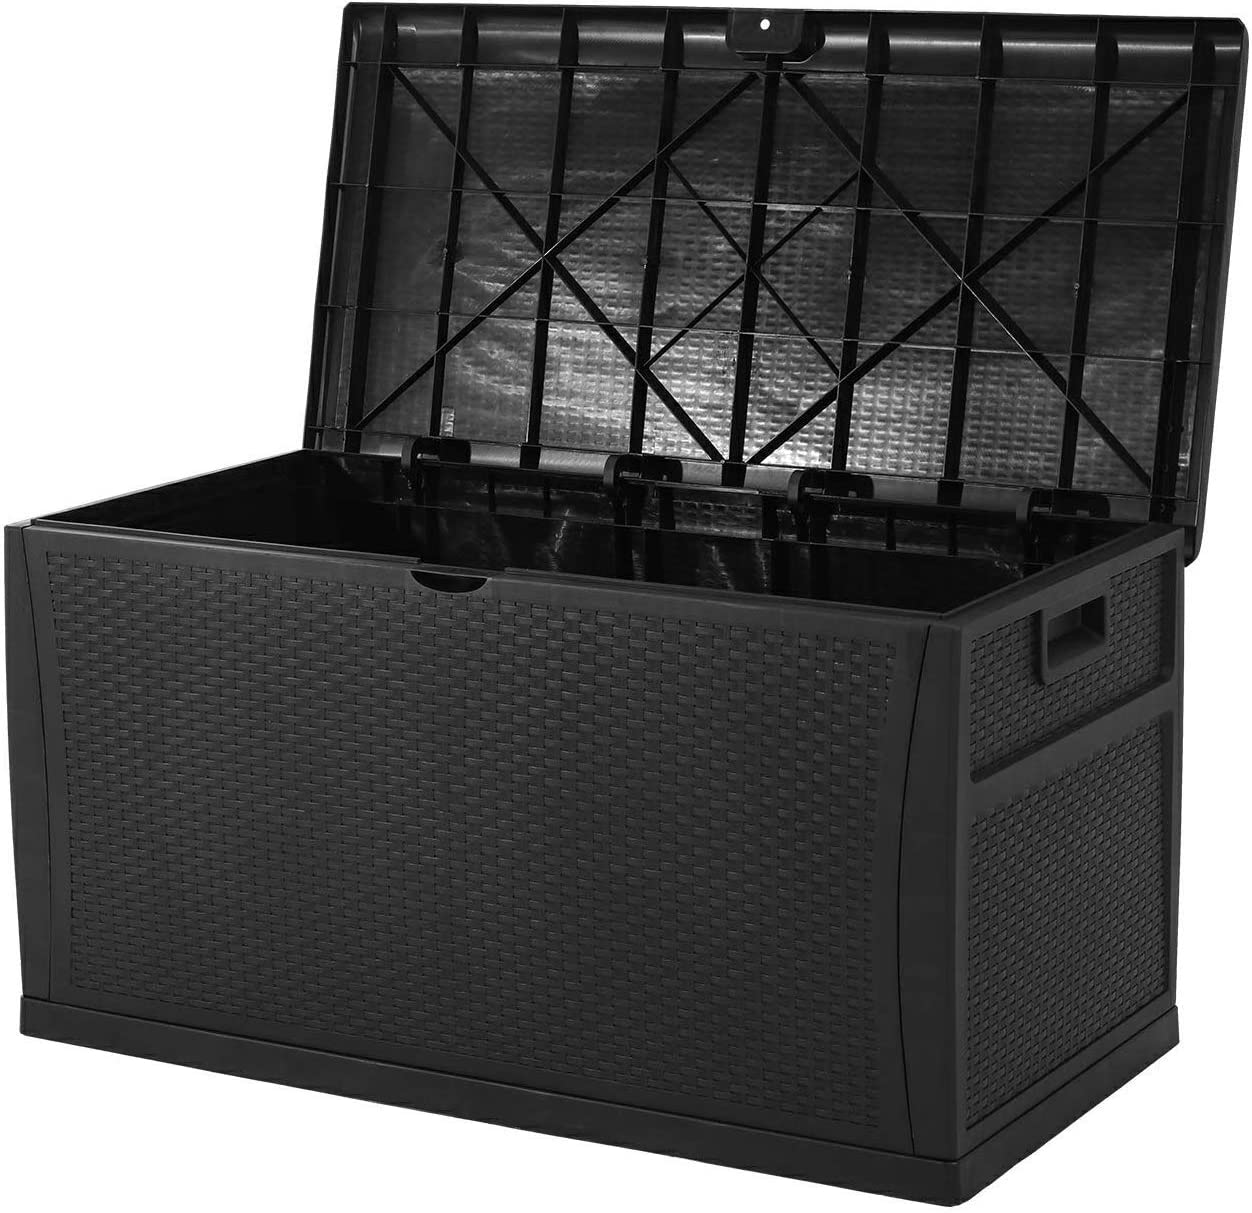 Oakmont Waterproof Patio Deck Box Outdoor Resin Wicker Storage Container Garden Furniture 120 Gallon, Black